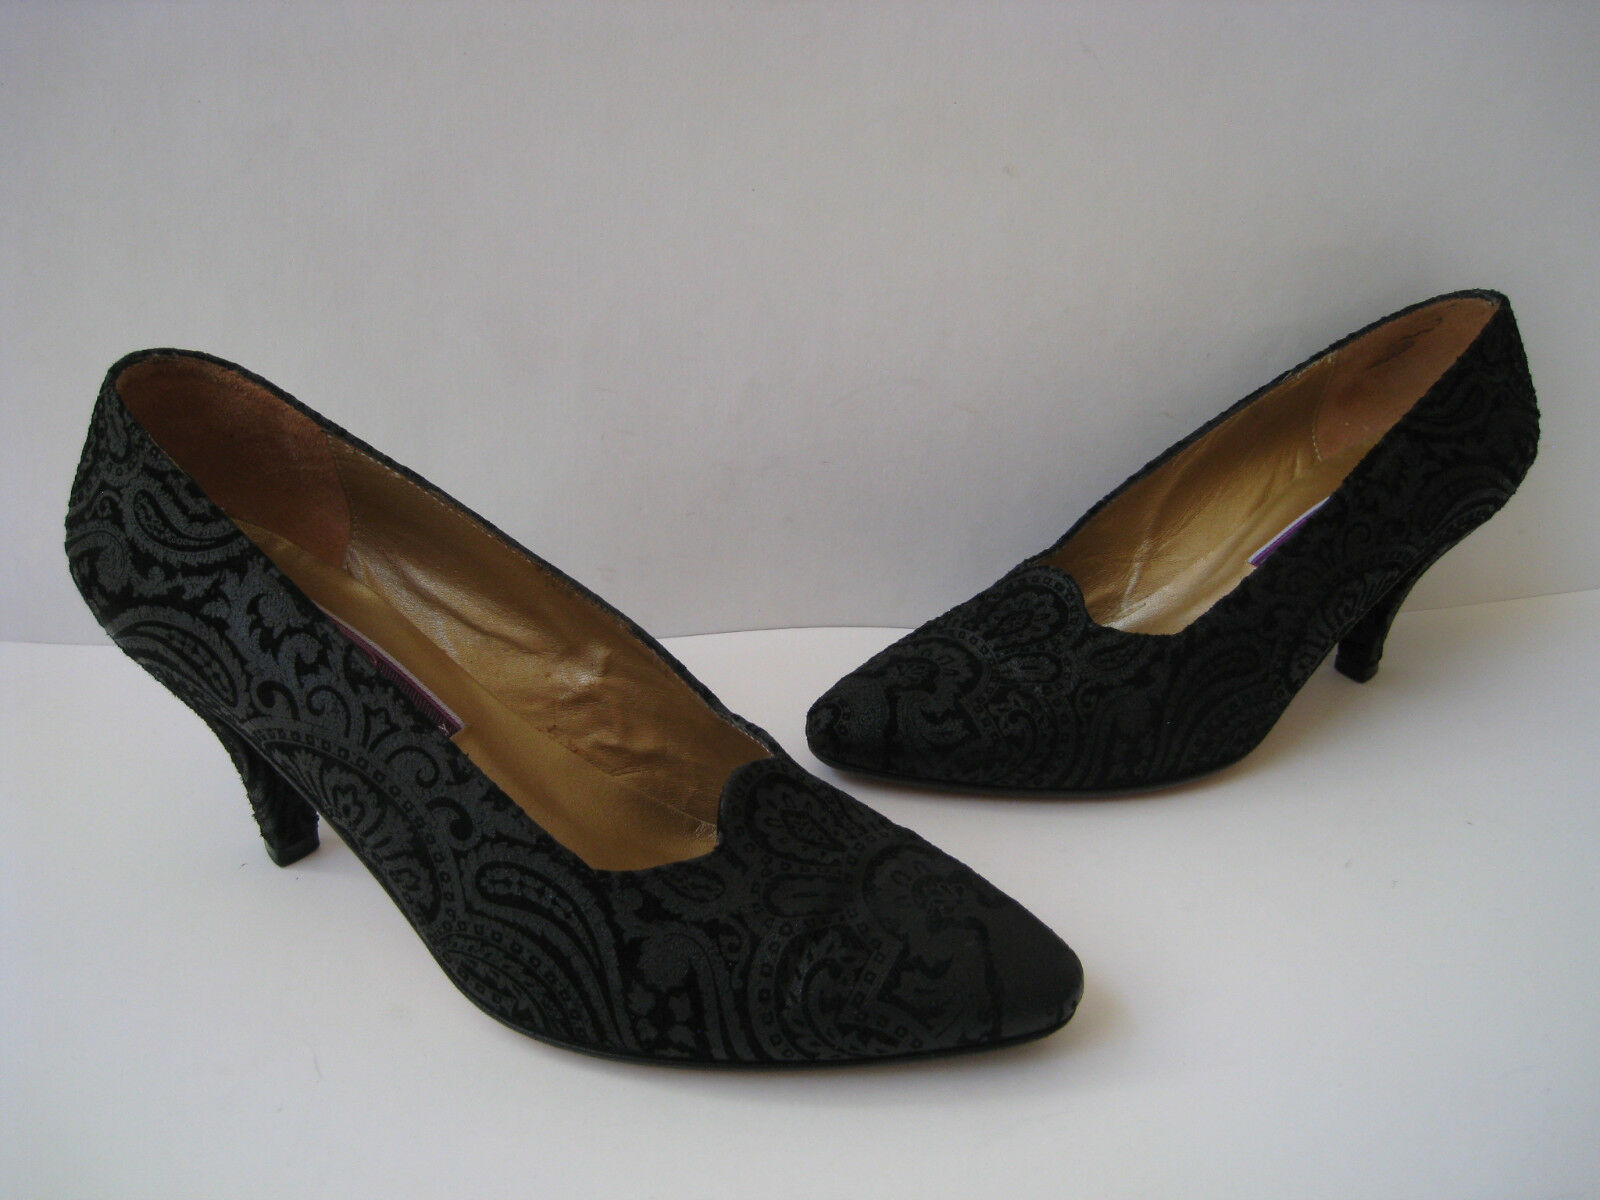 PHYLLIS POLAND BLACK PUMPS LEATHER PUMPS BLACK HEELS WOMEN SIZE  5.5B HOT ITALY VINTAGE 0006df